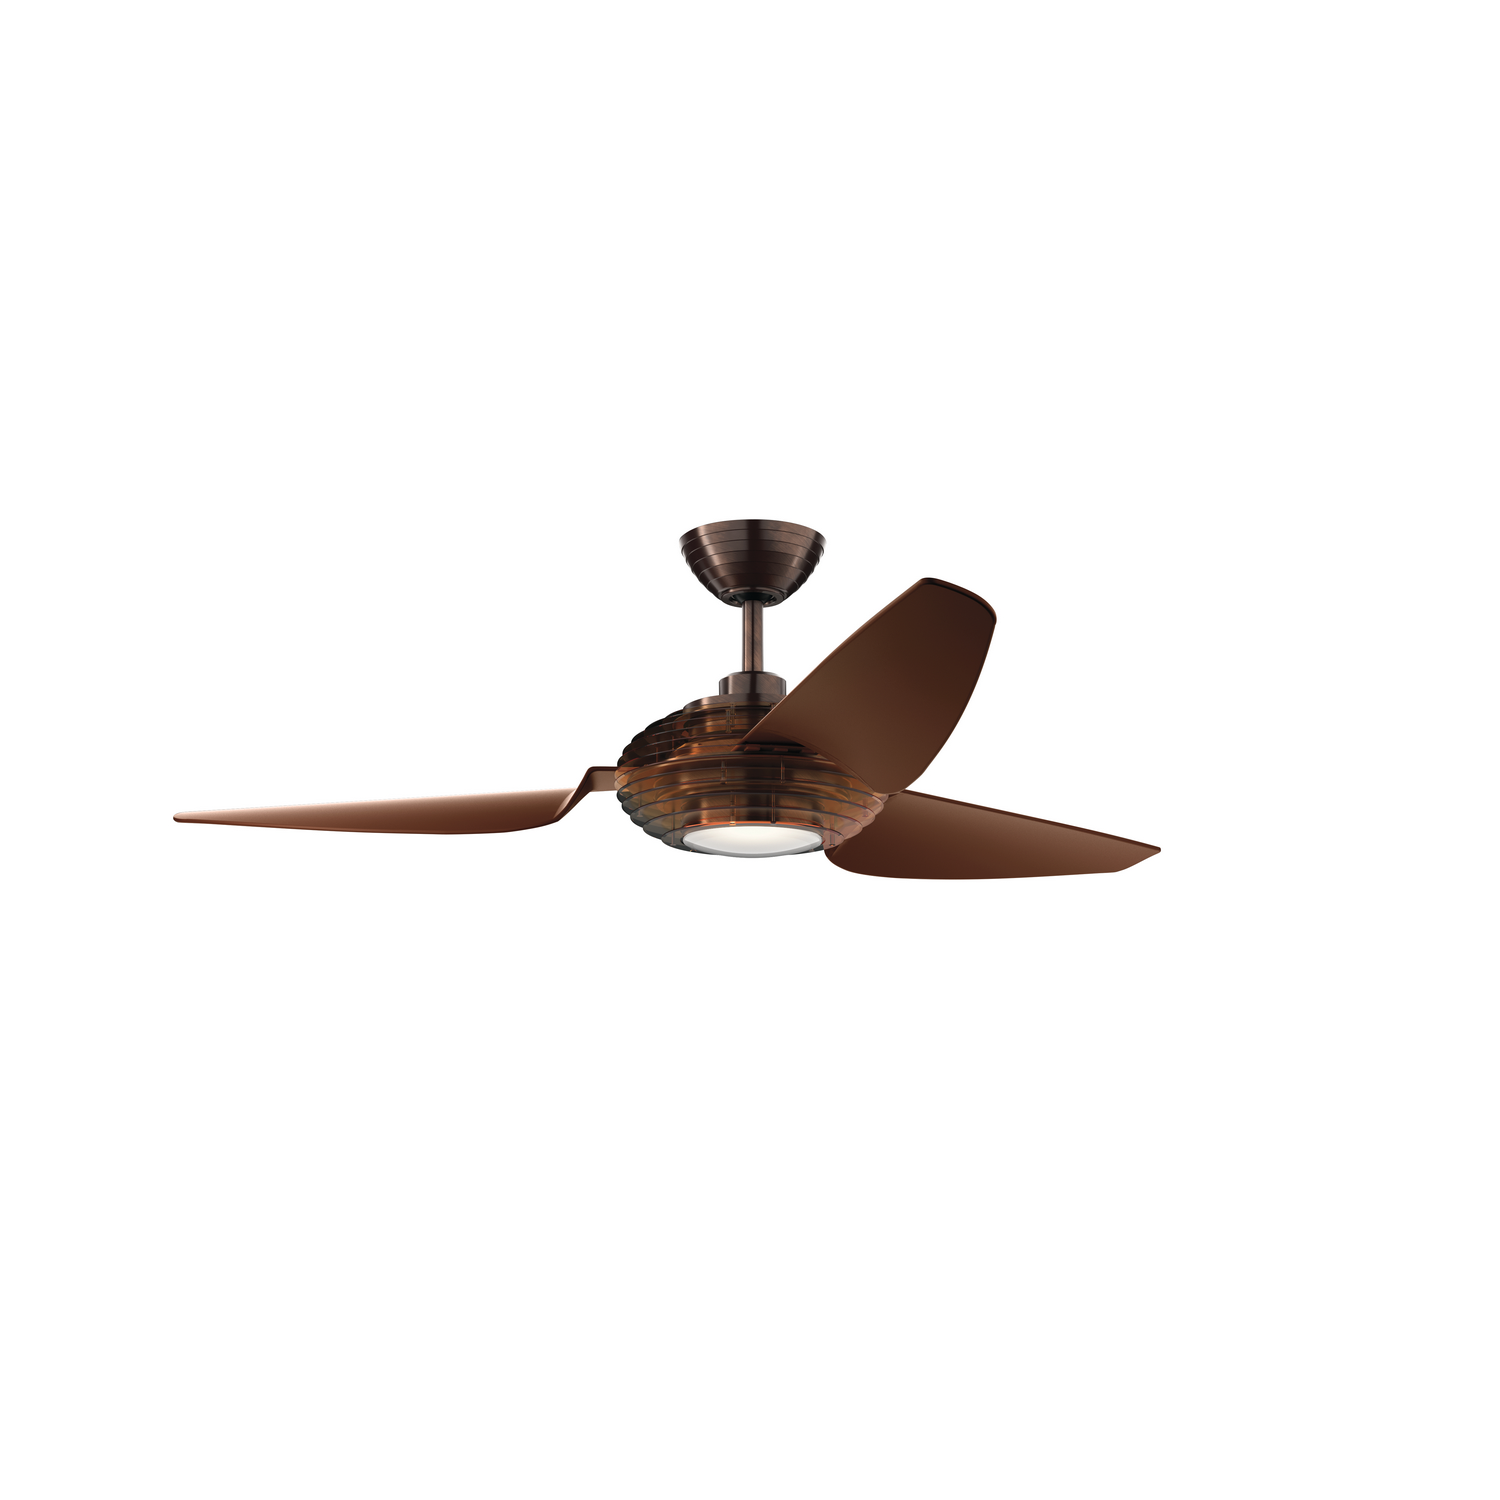 60 inchCeiling Fan from the Voya collection by Kichler 300706OBB